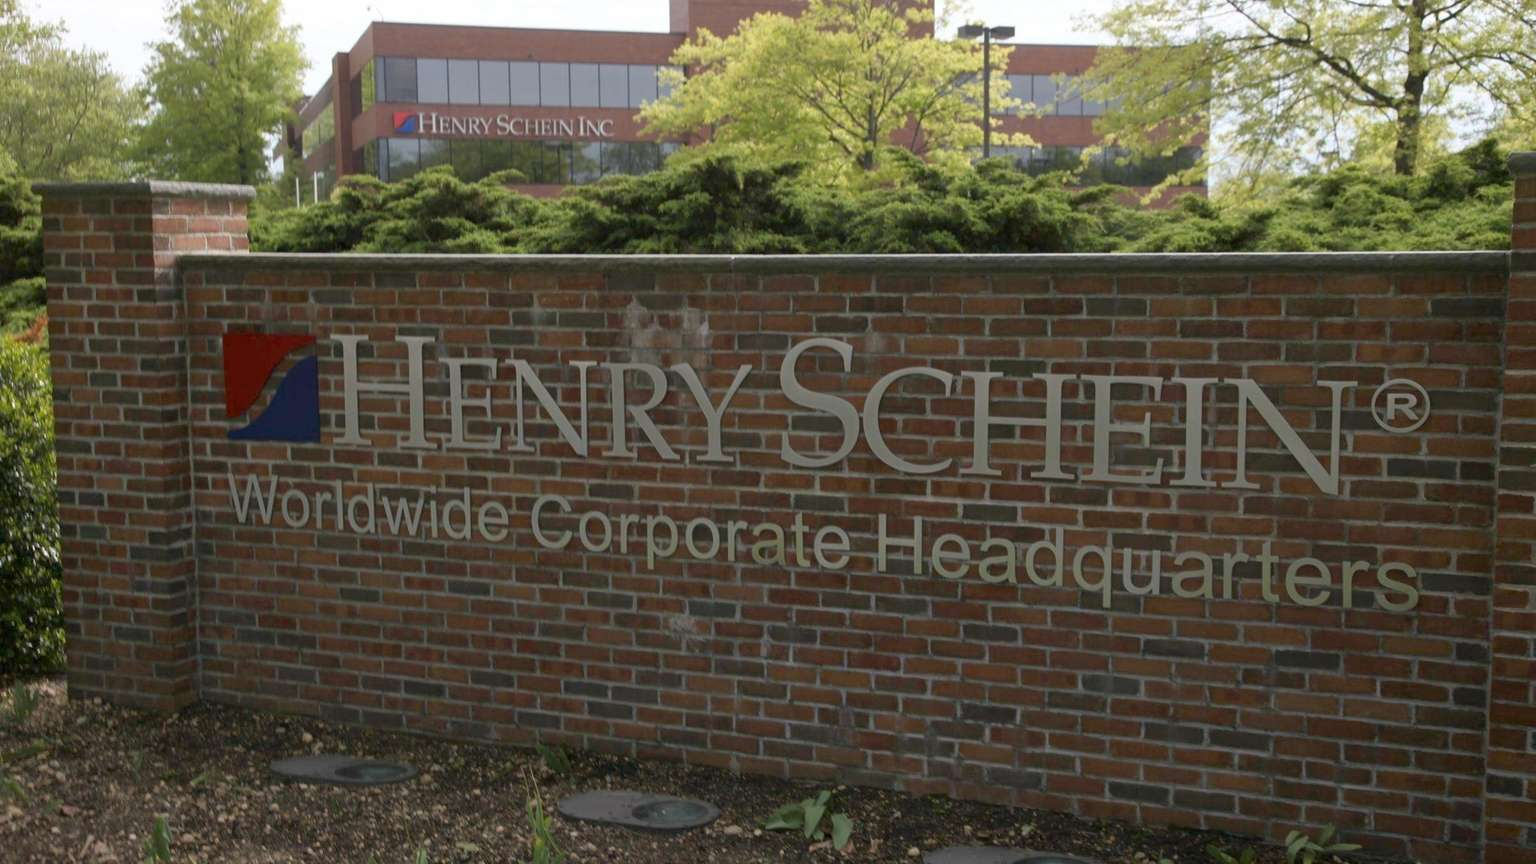 Henry Schein of Melville has agreed to acquire